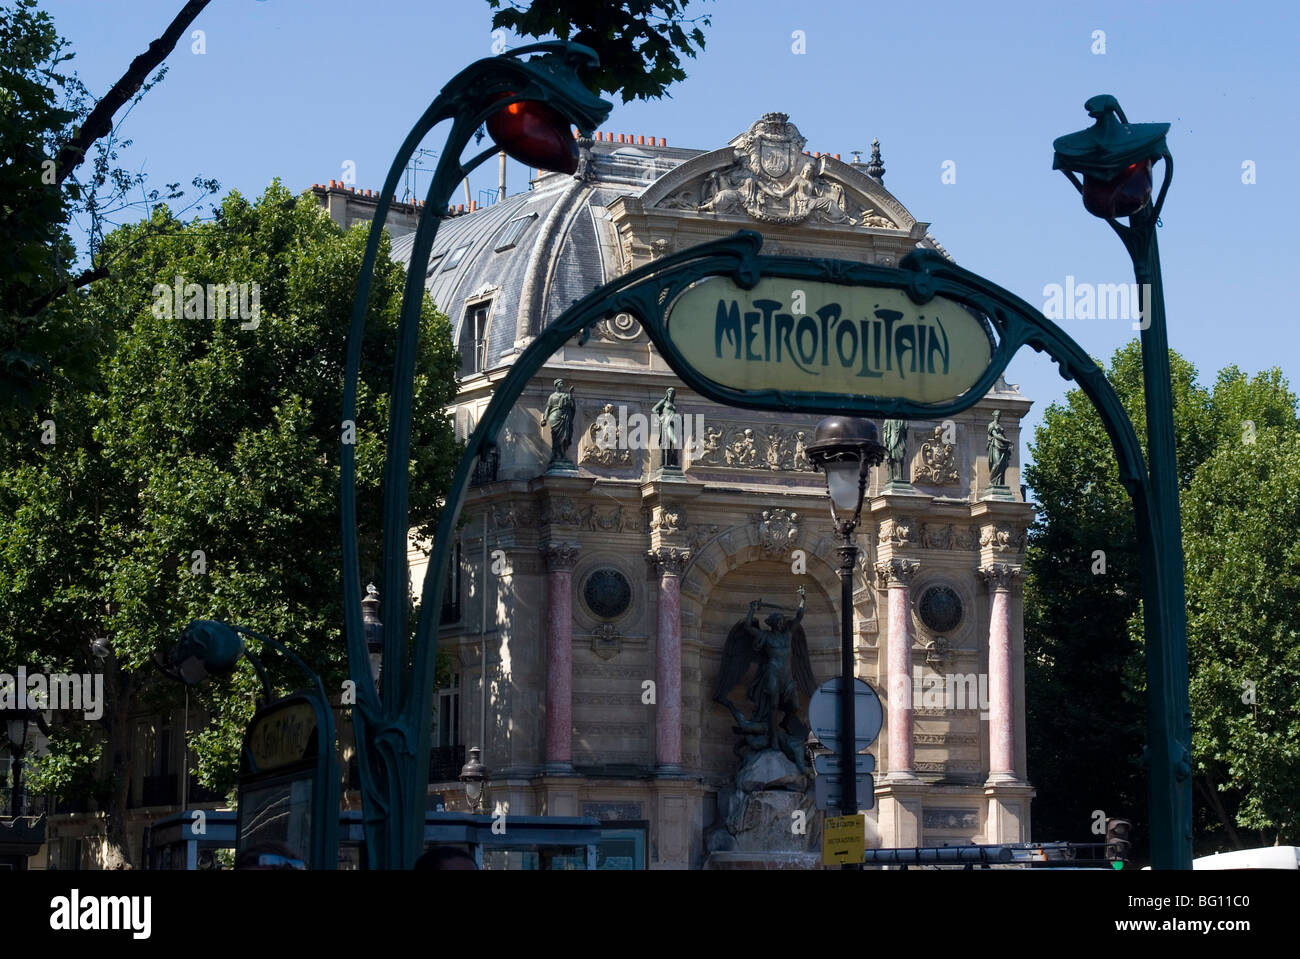 Boulevard st michel stock photos boulevard st michel - Metro saint michel paris ...